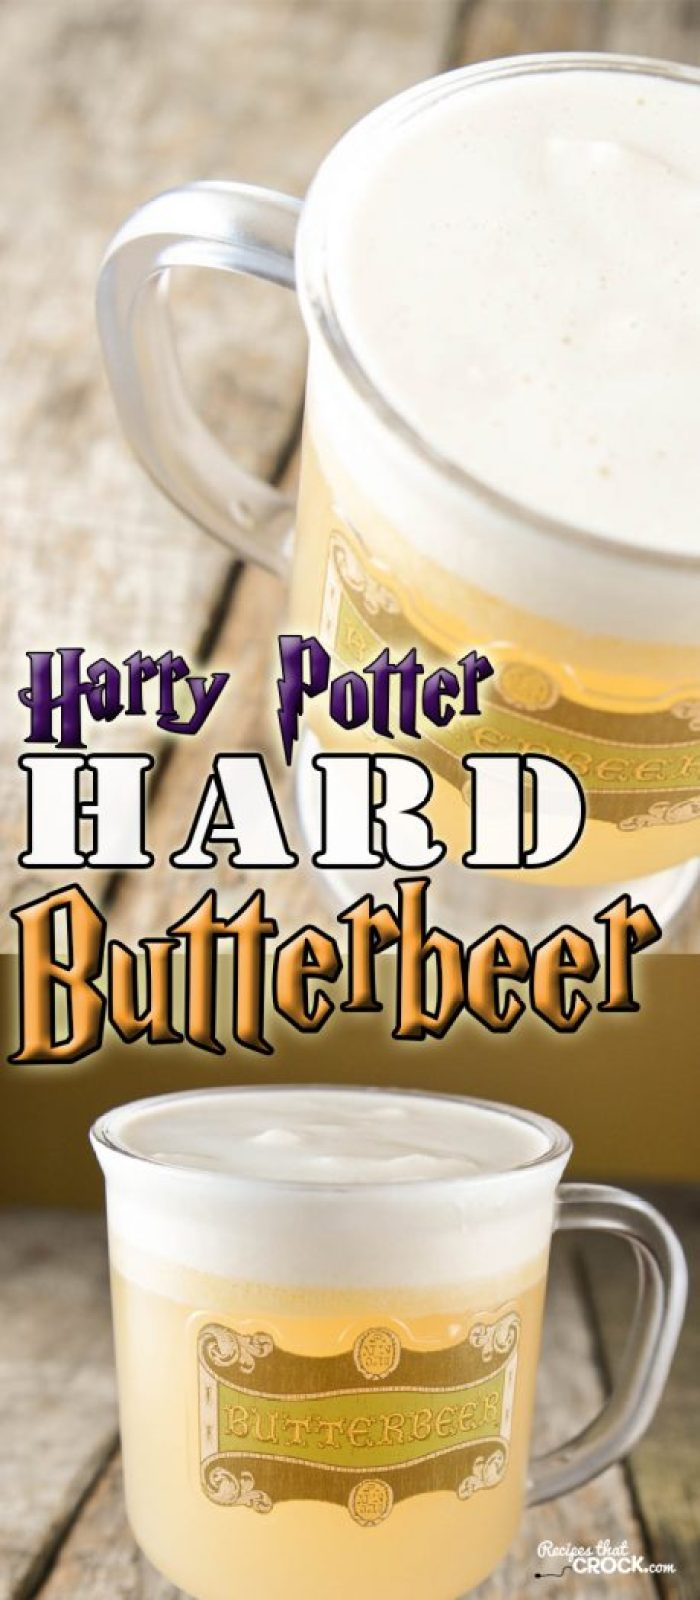 Are you looking for a tasty brew to share with your fellow Muggles? This Harry Potter Hard Butterbeer Recipe is an alcoholic version of the beloved beverage from the Harry Potter books, movies and theme park.